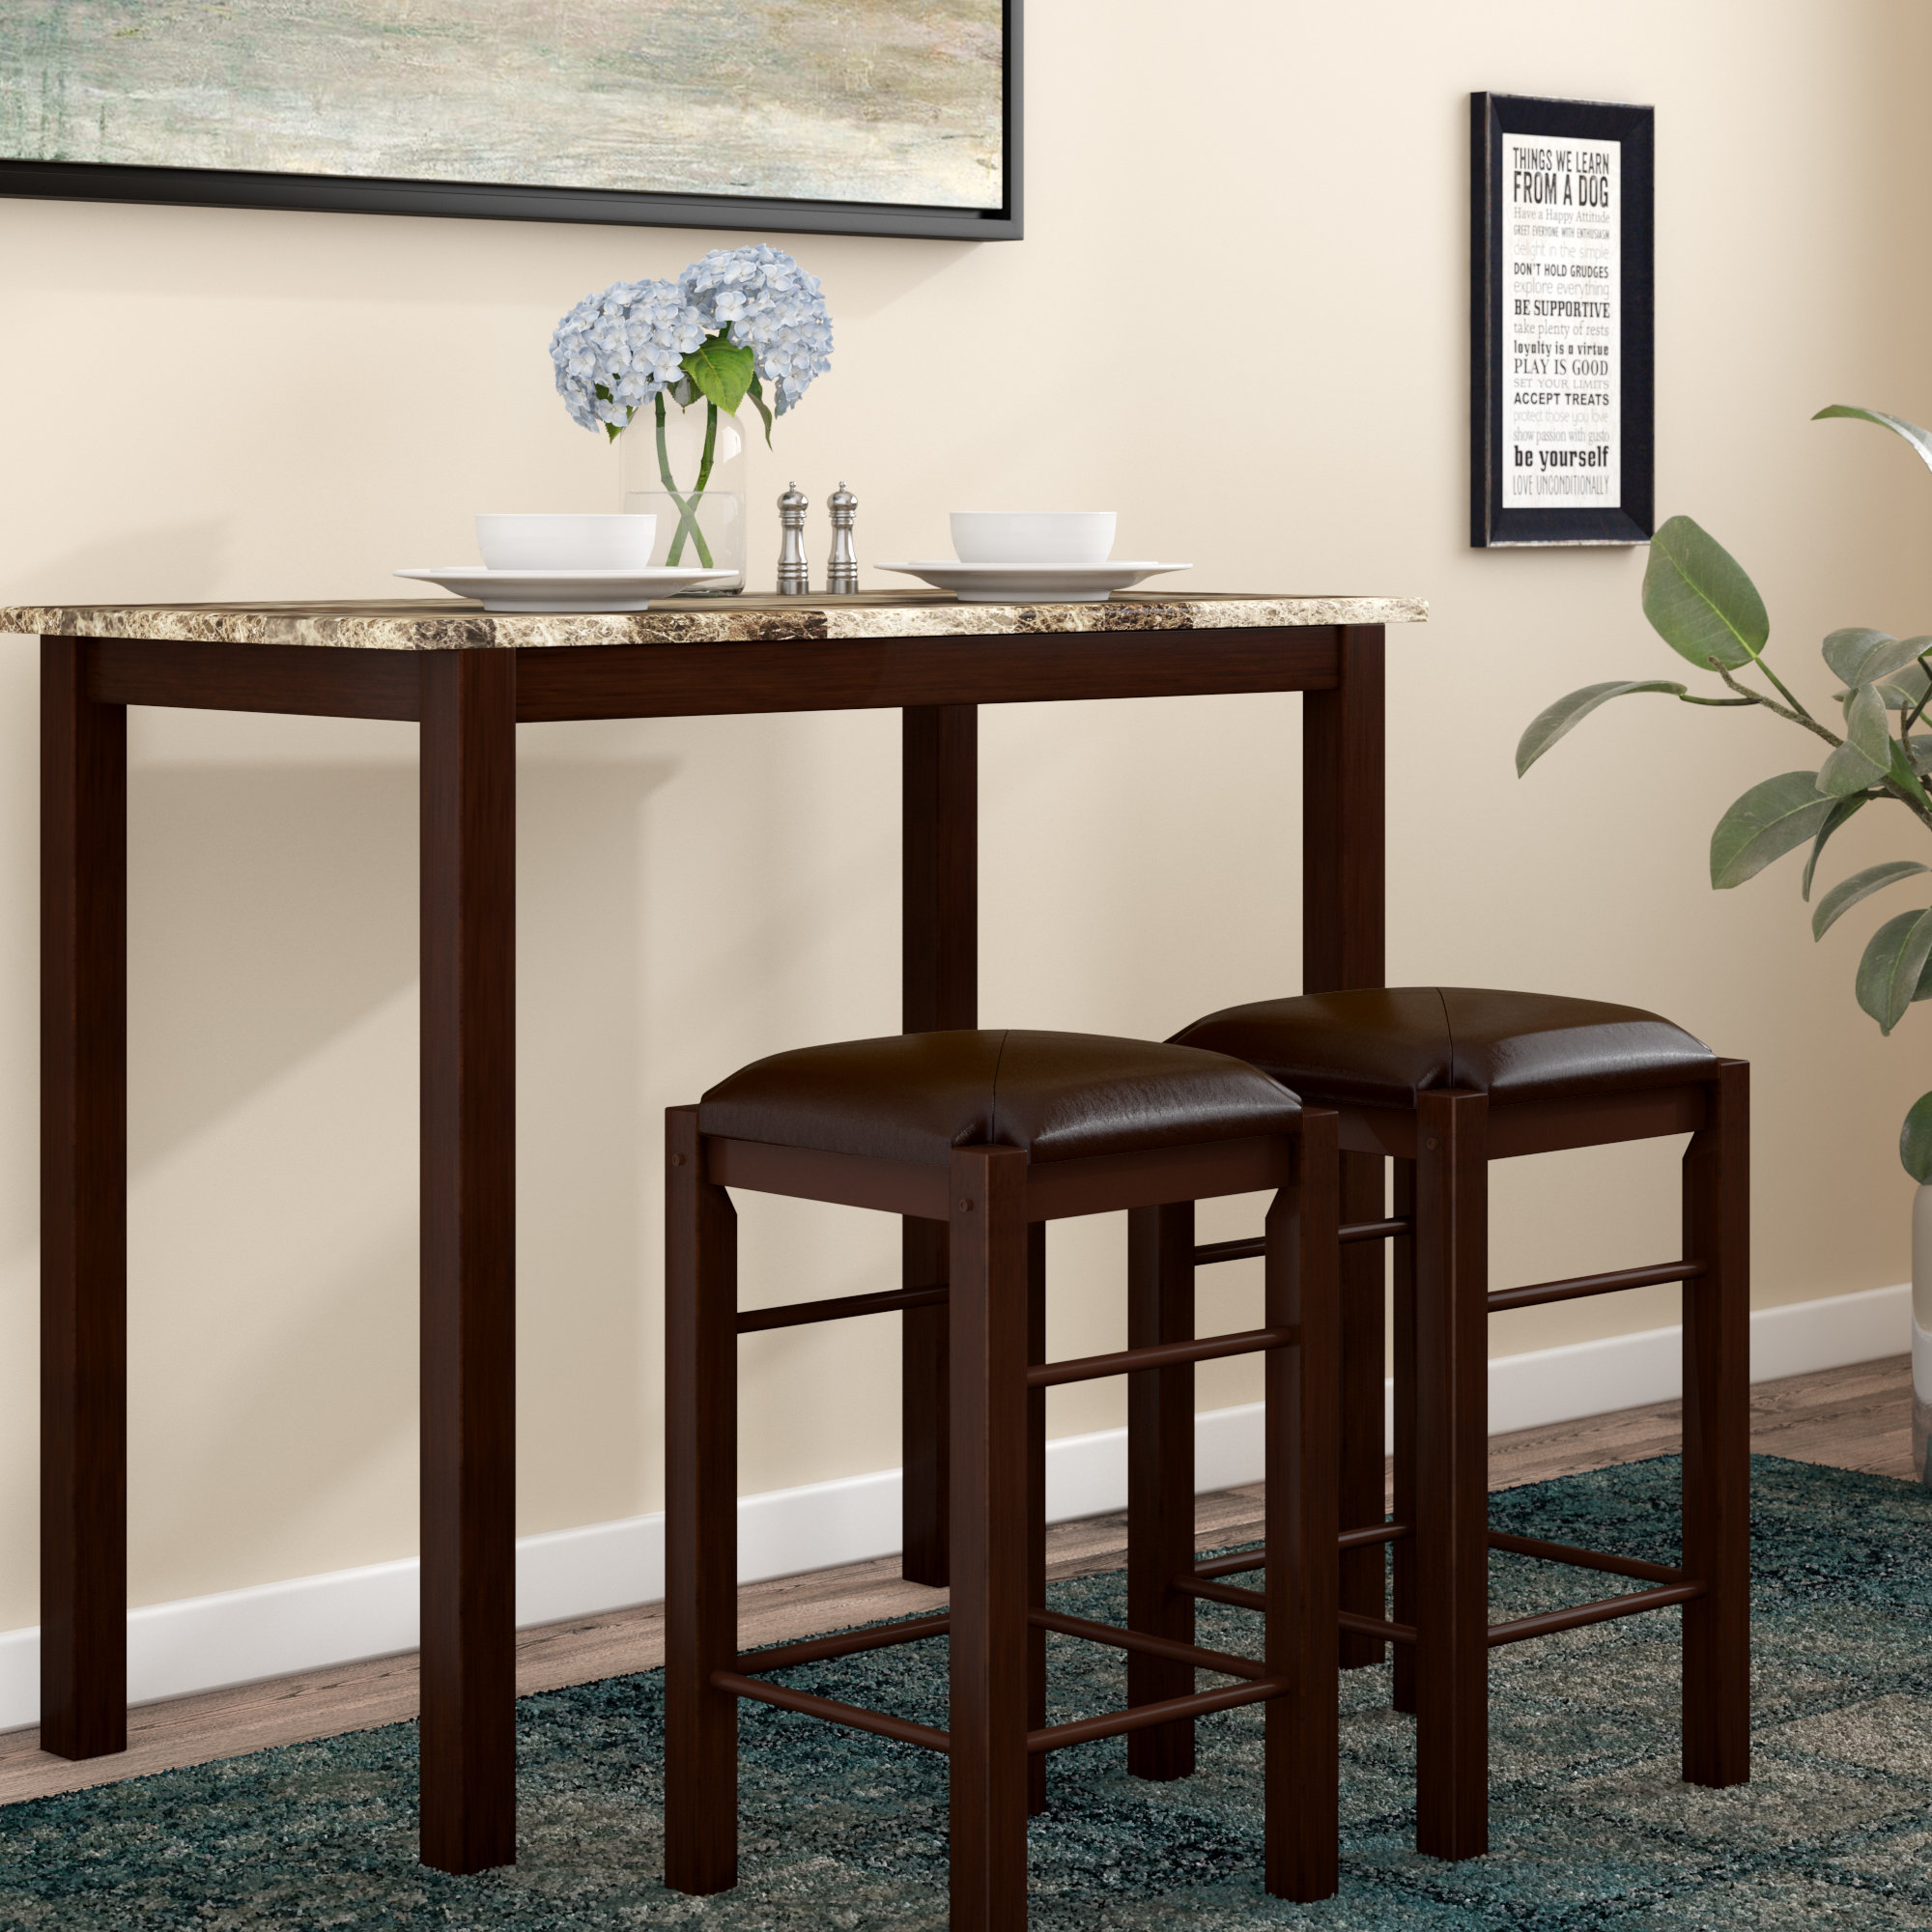 Penelope 3 Piece Counter Height Wood Dining Set Intended For Most Popular Bettencourt 3 Piece Counter Height Solid Wood Dining Sets (View 5 of 20)